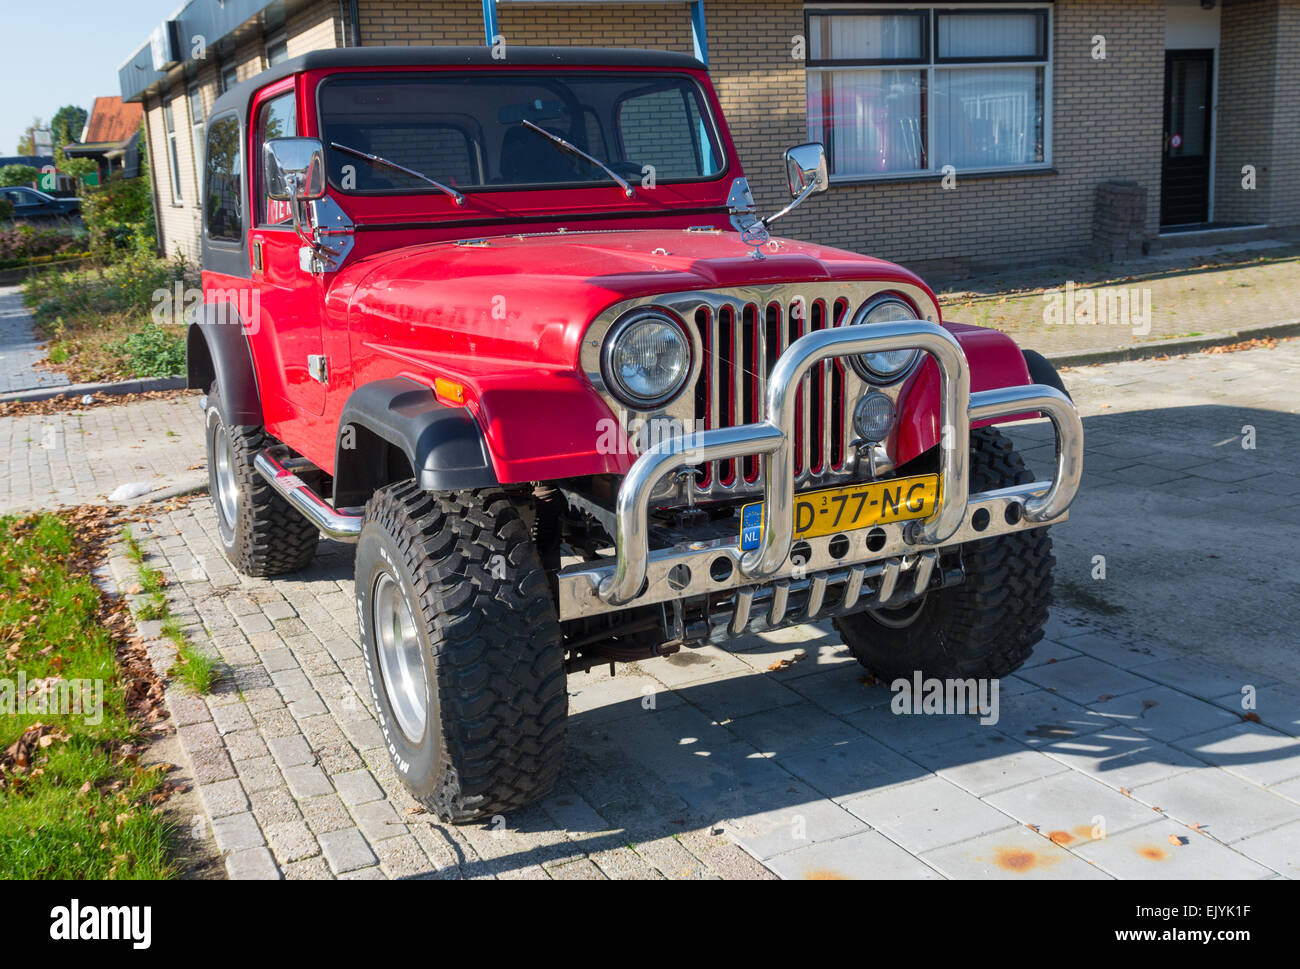 red jeep wrangler car with chrome bull bar. The production of the Wrangler began in 1987 and was succeeded in 1997 - Stock Image